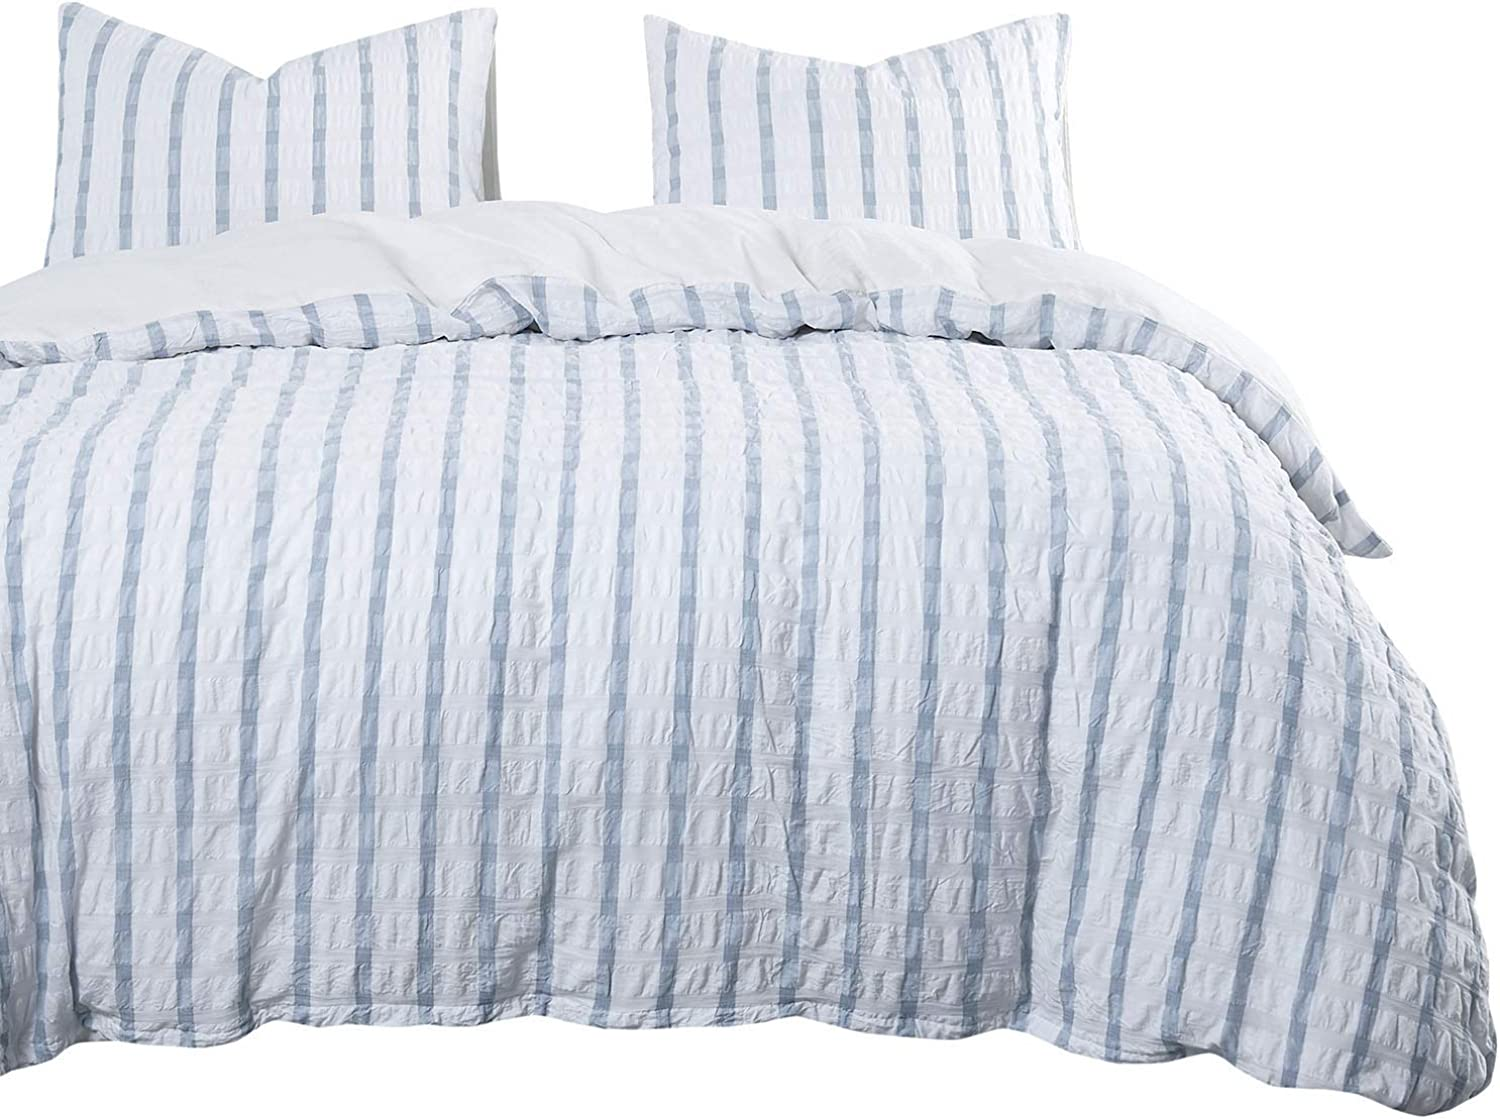 Wake In Cloud - Seersucker Duvet Cover Set, 100% Washed Cotton Bedding, Grid Plaid with bluee greenical Stripes and White Horizontal Striped (3pcs, King Size)